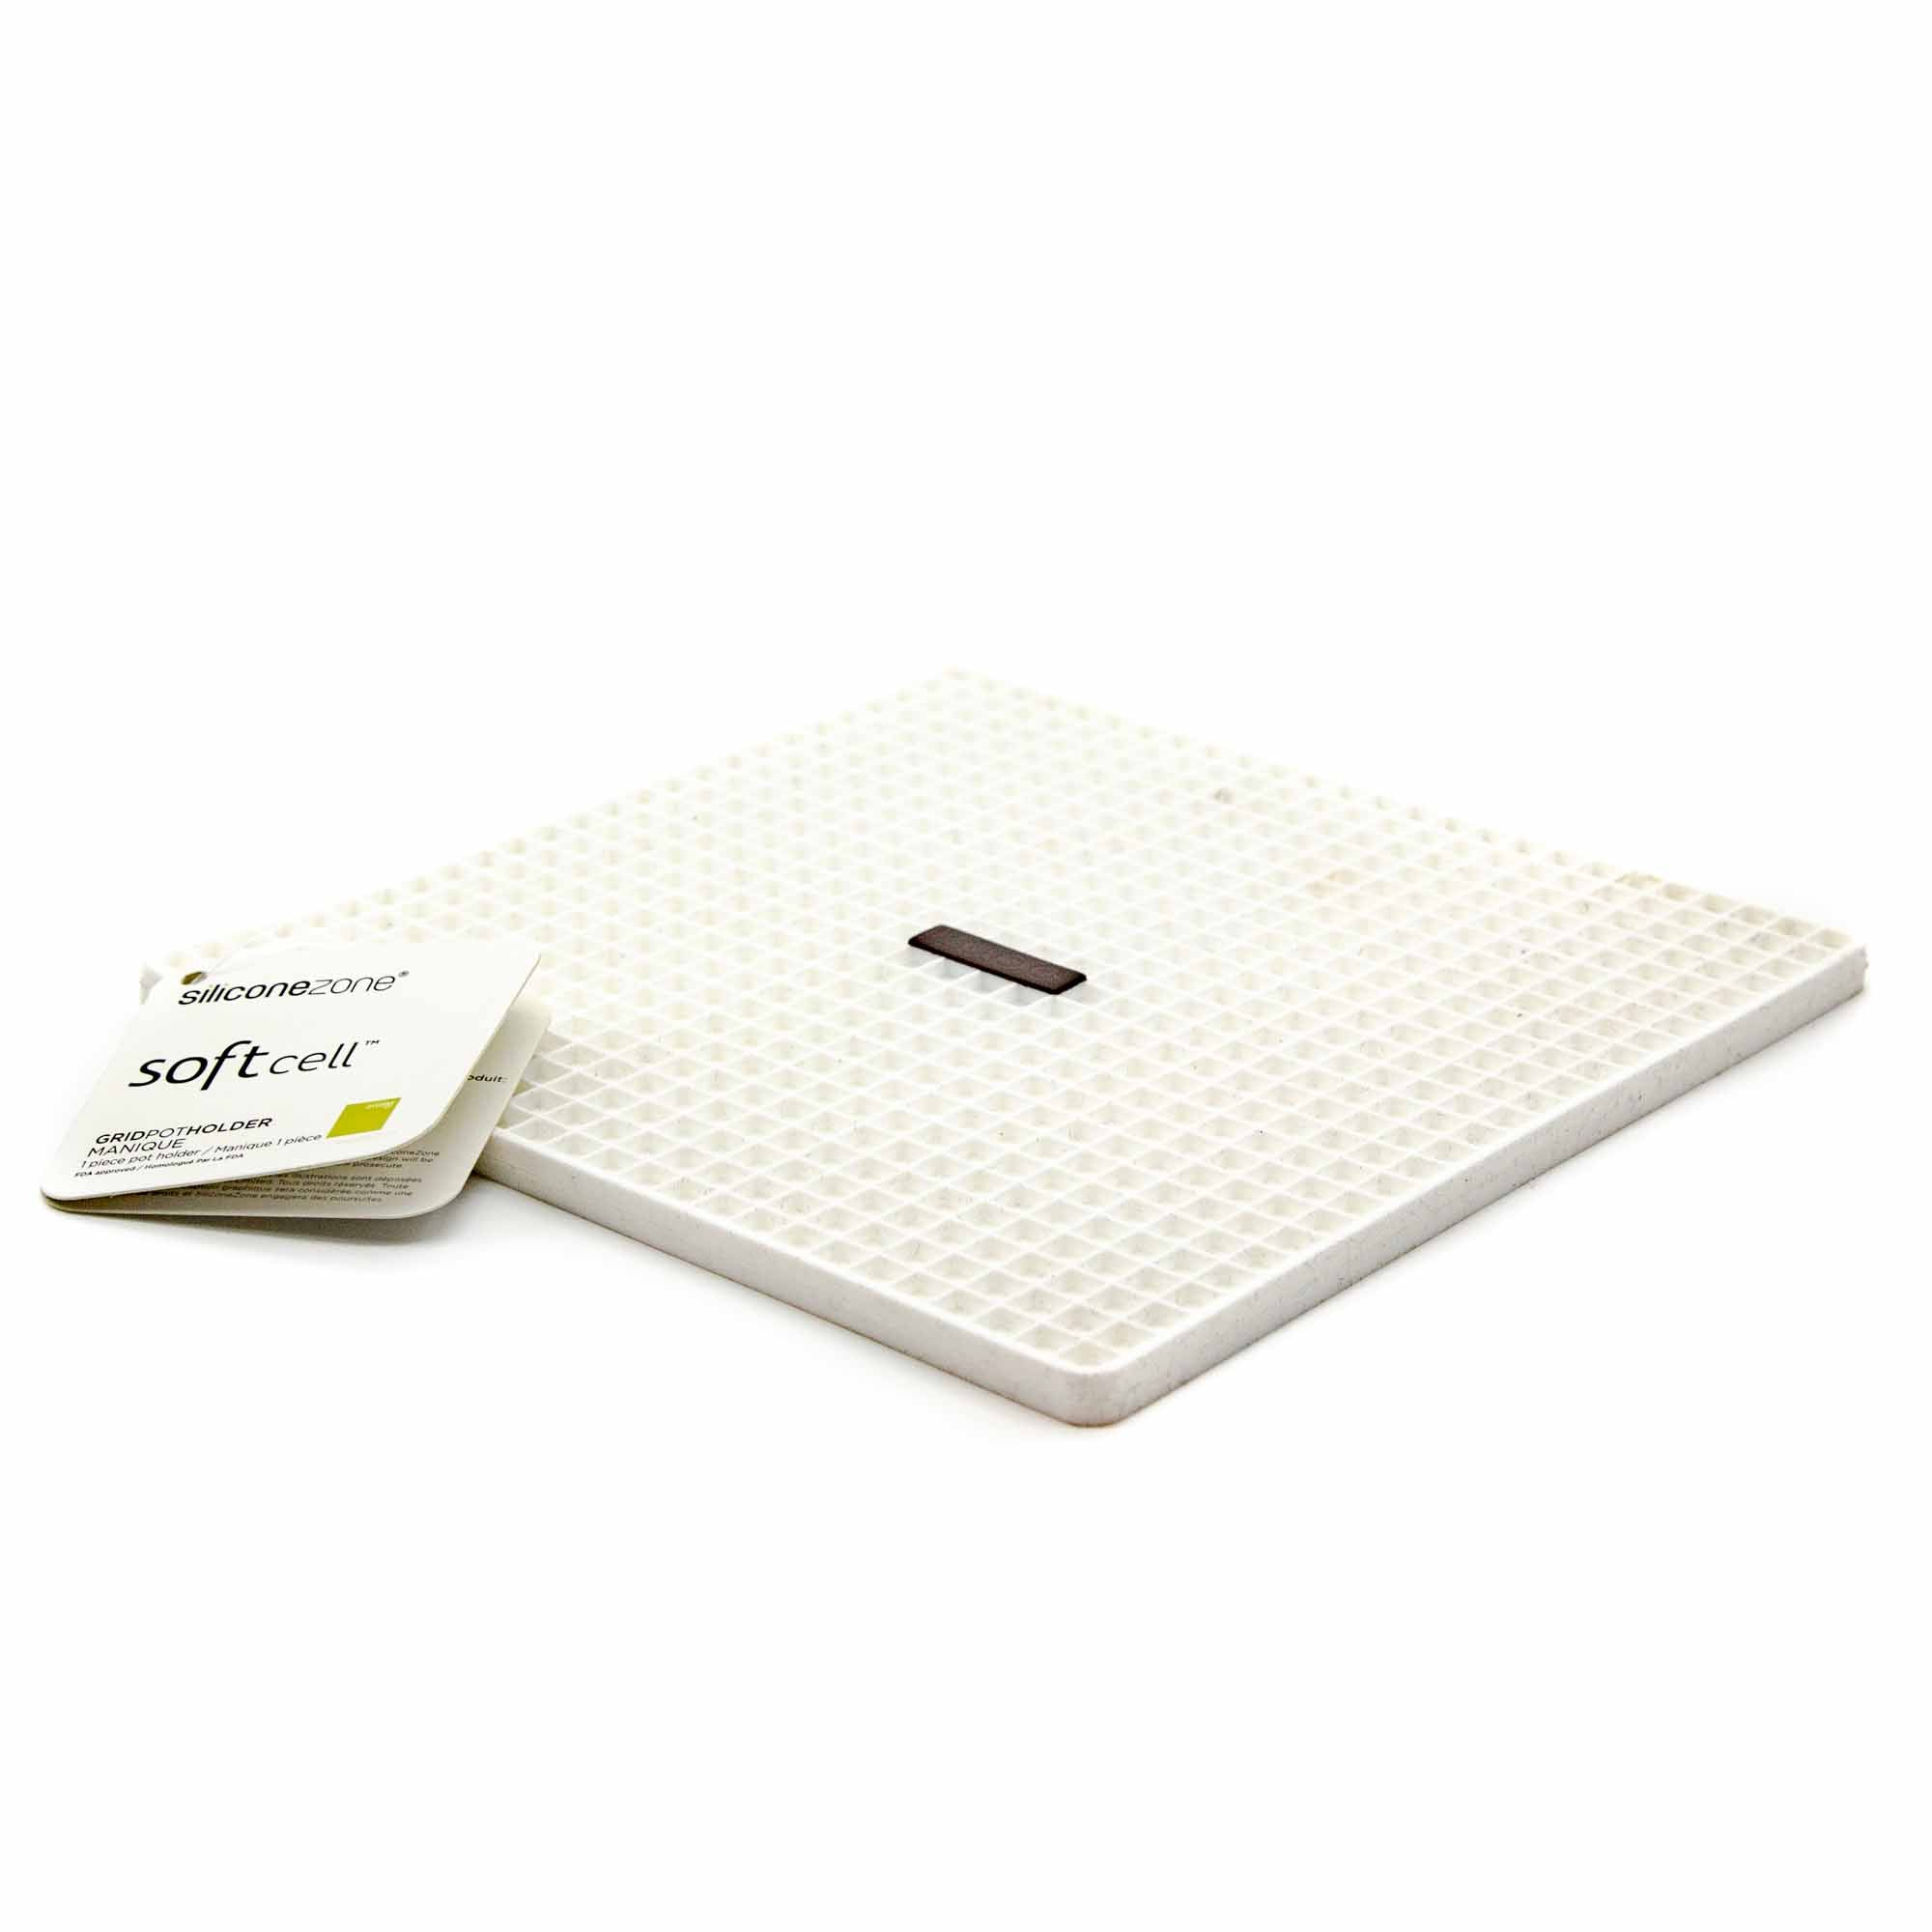 Silicone Zone Grid Potholder - 2 Colours - Mortise And Tenon